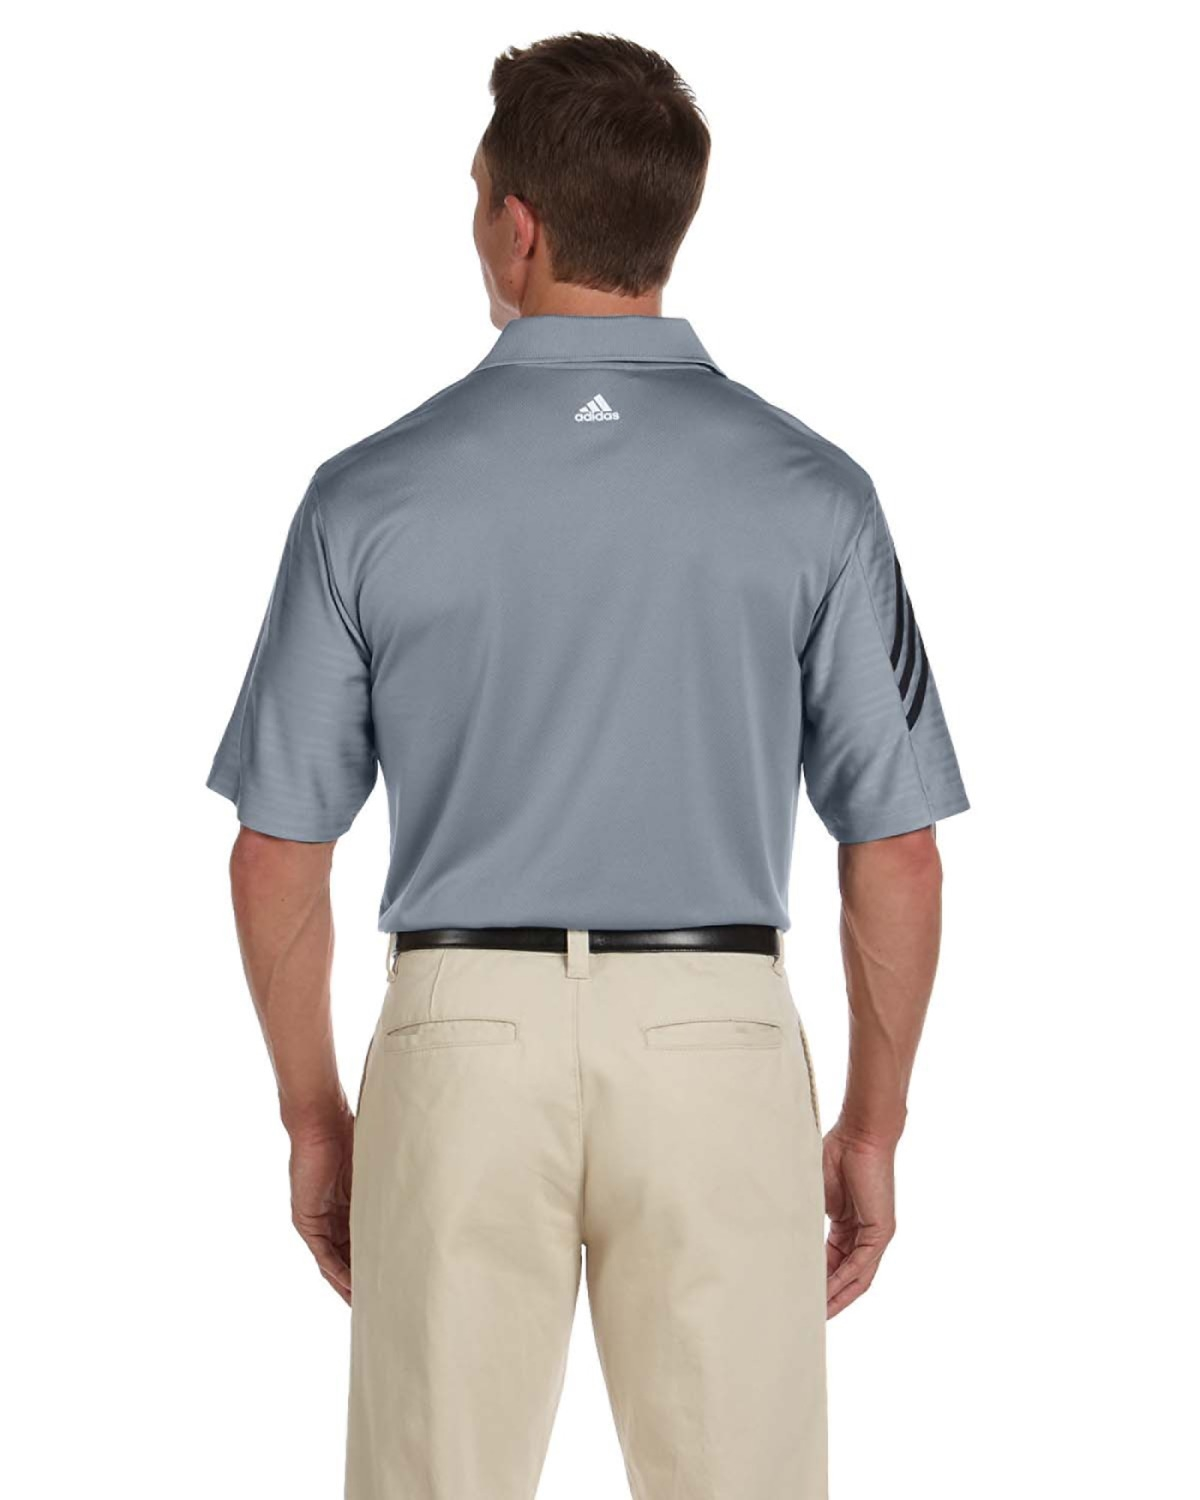 Adidas Golf A133 Mens Climacool Mesh Polo Shirts